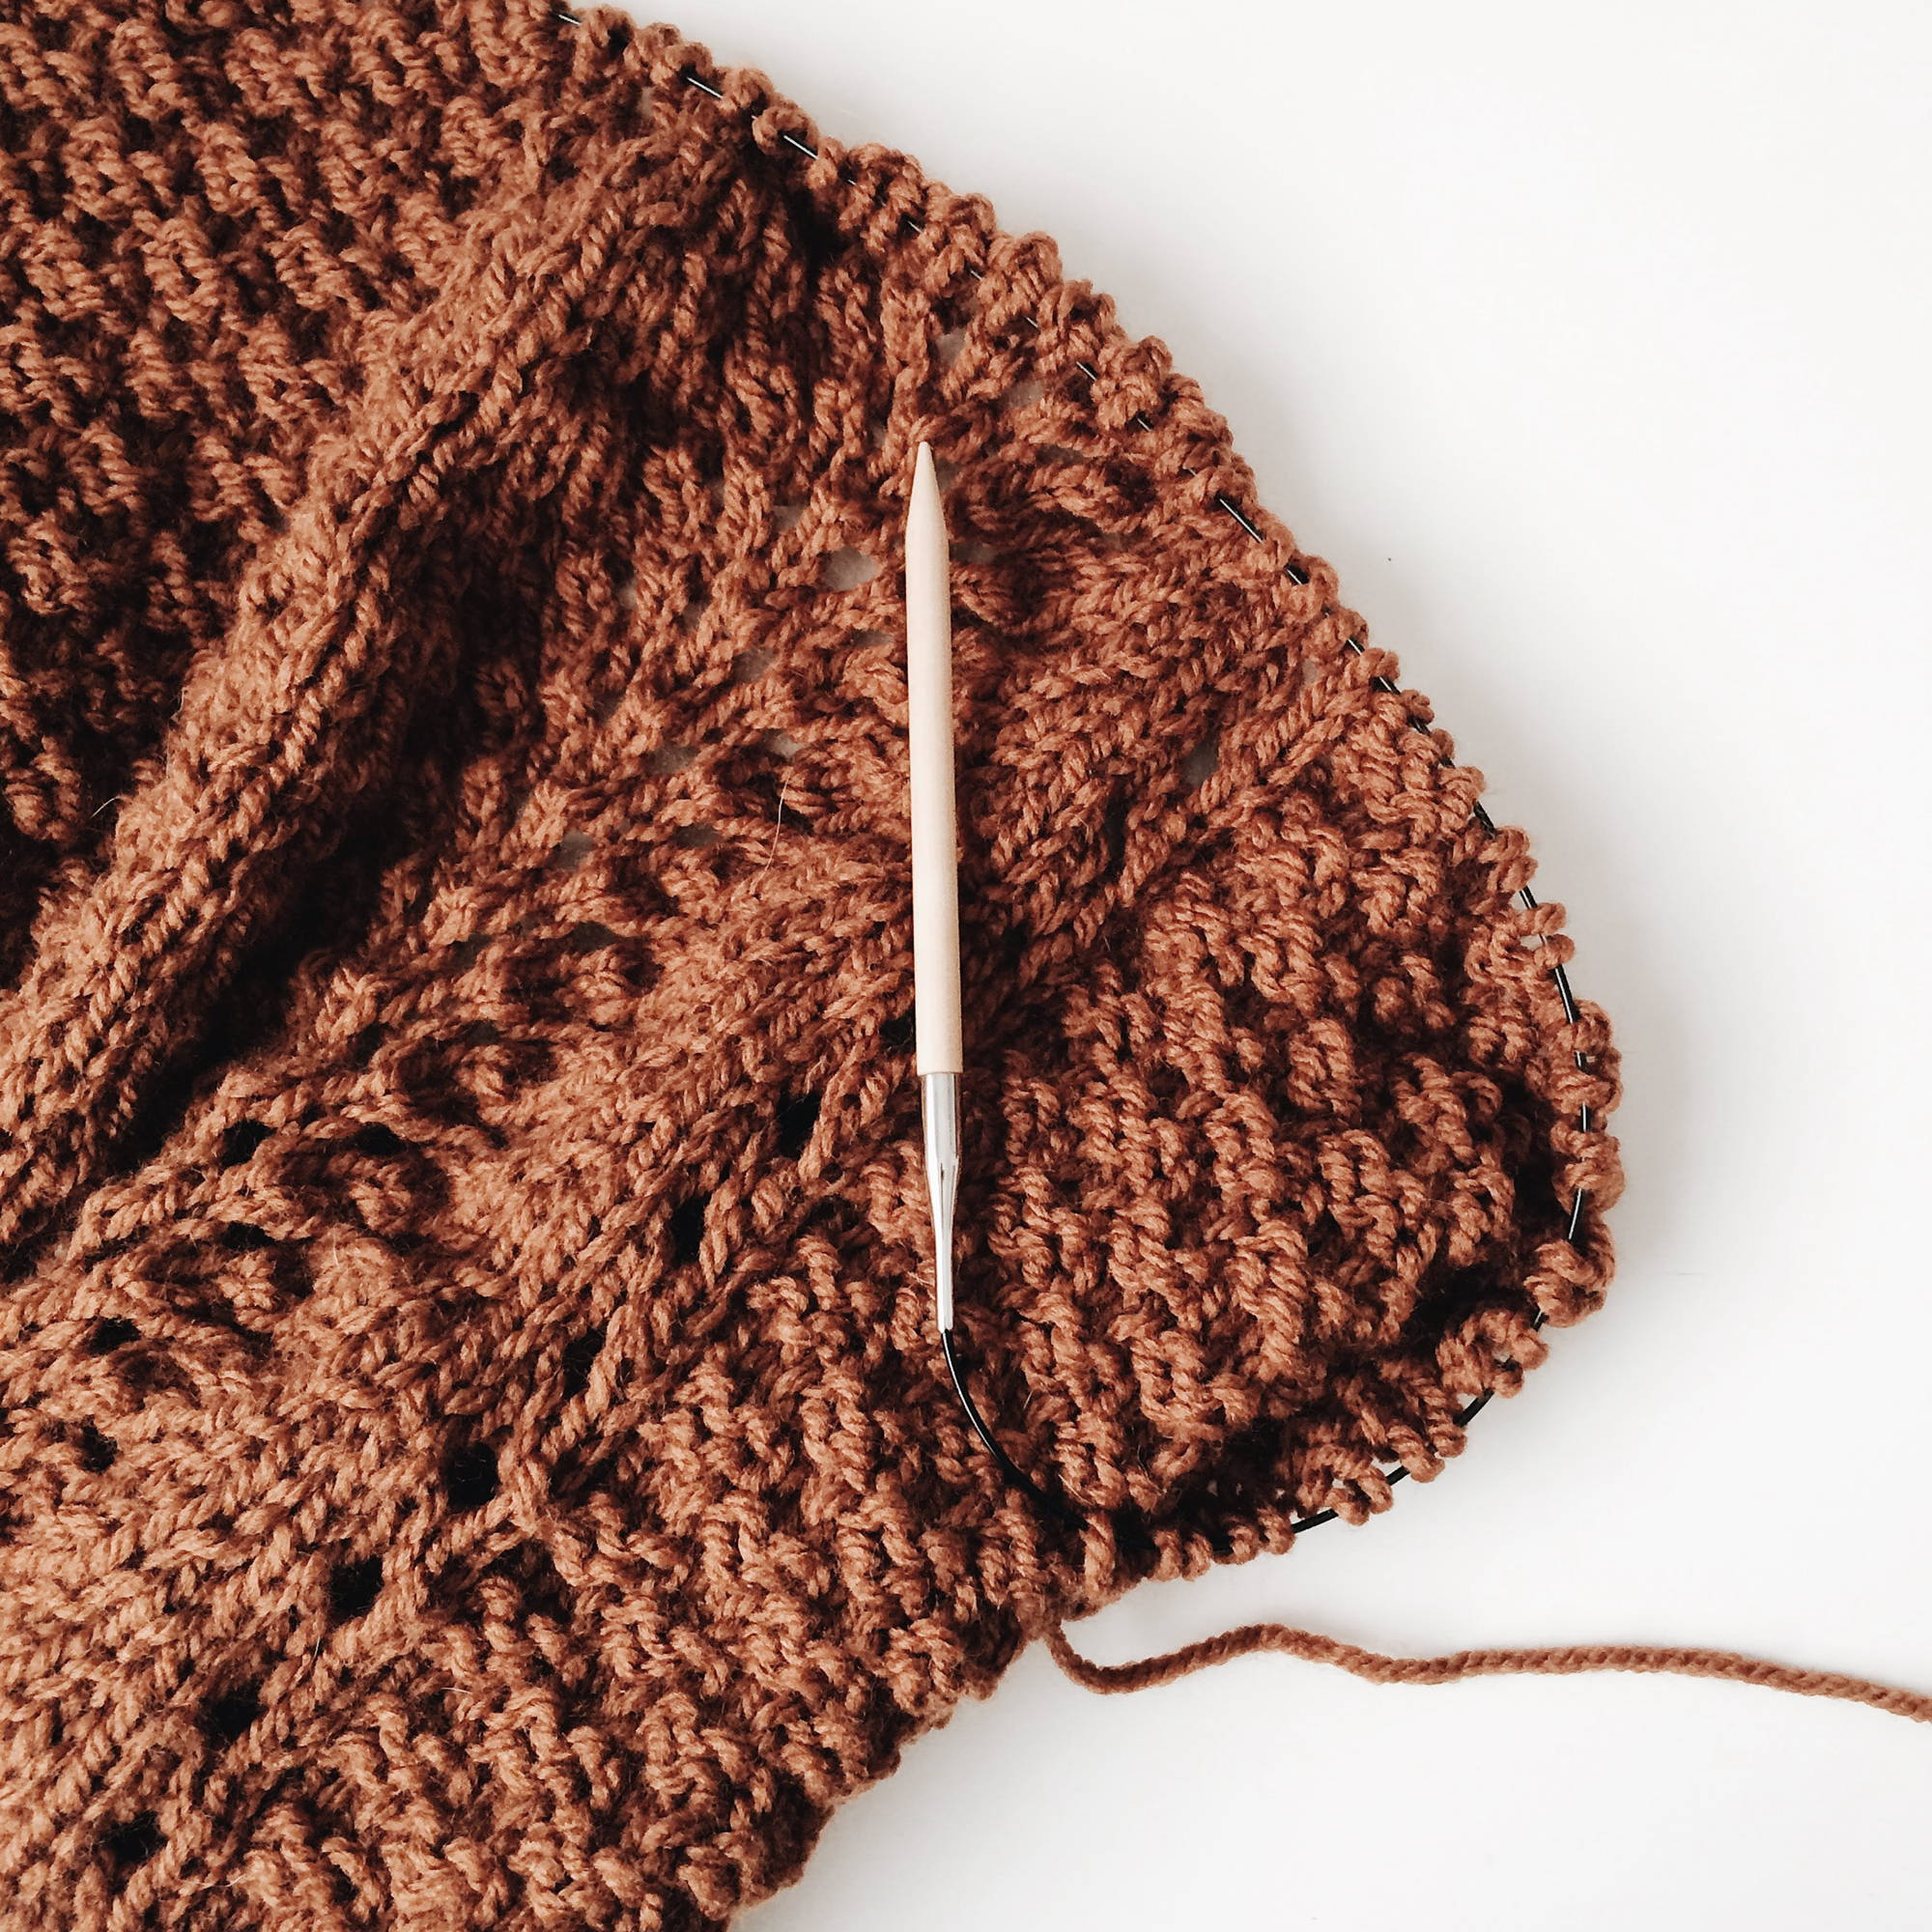 detail of a wool sweater with a wood knitting needle